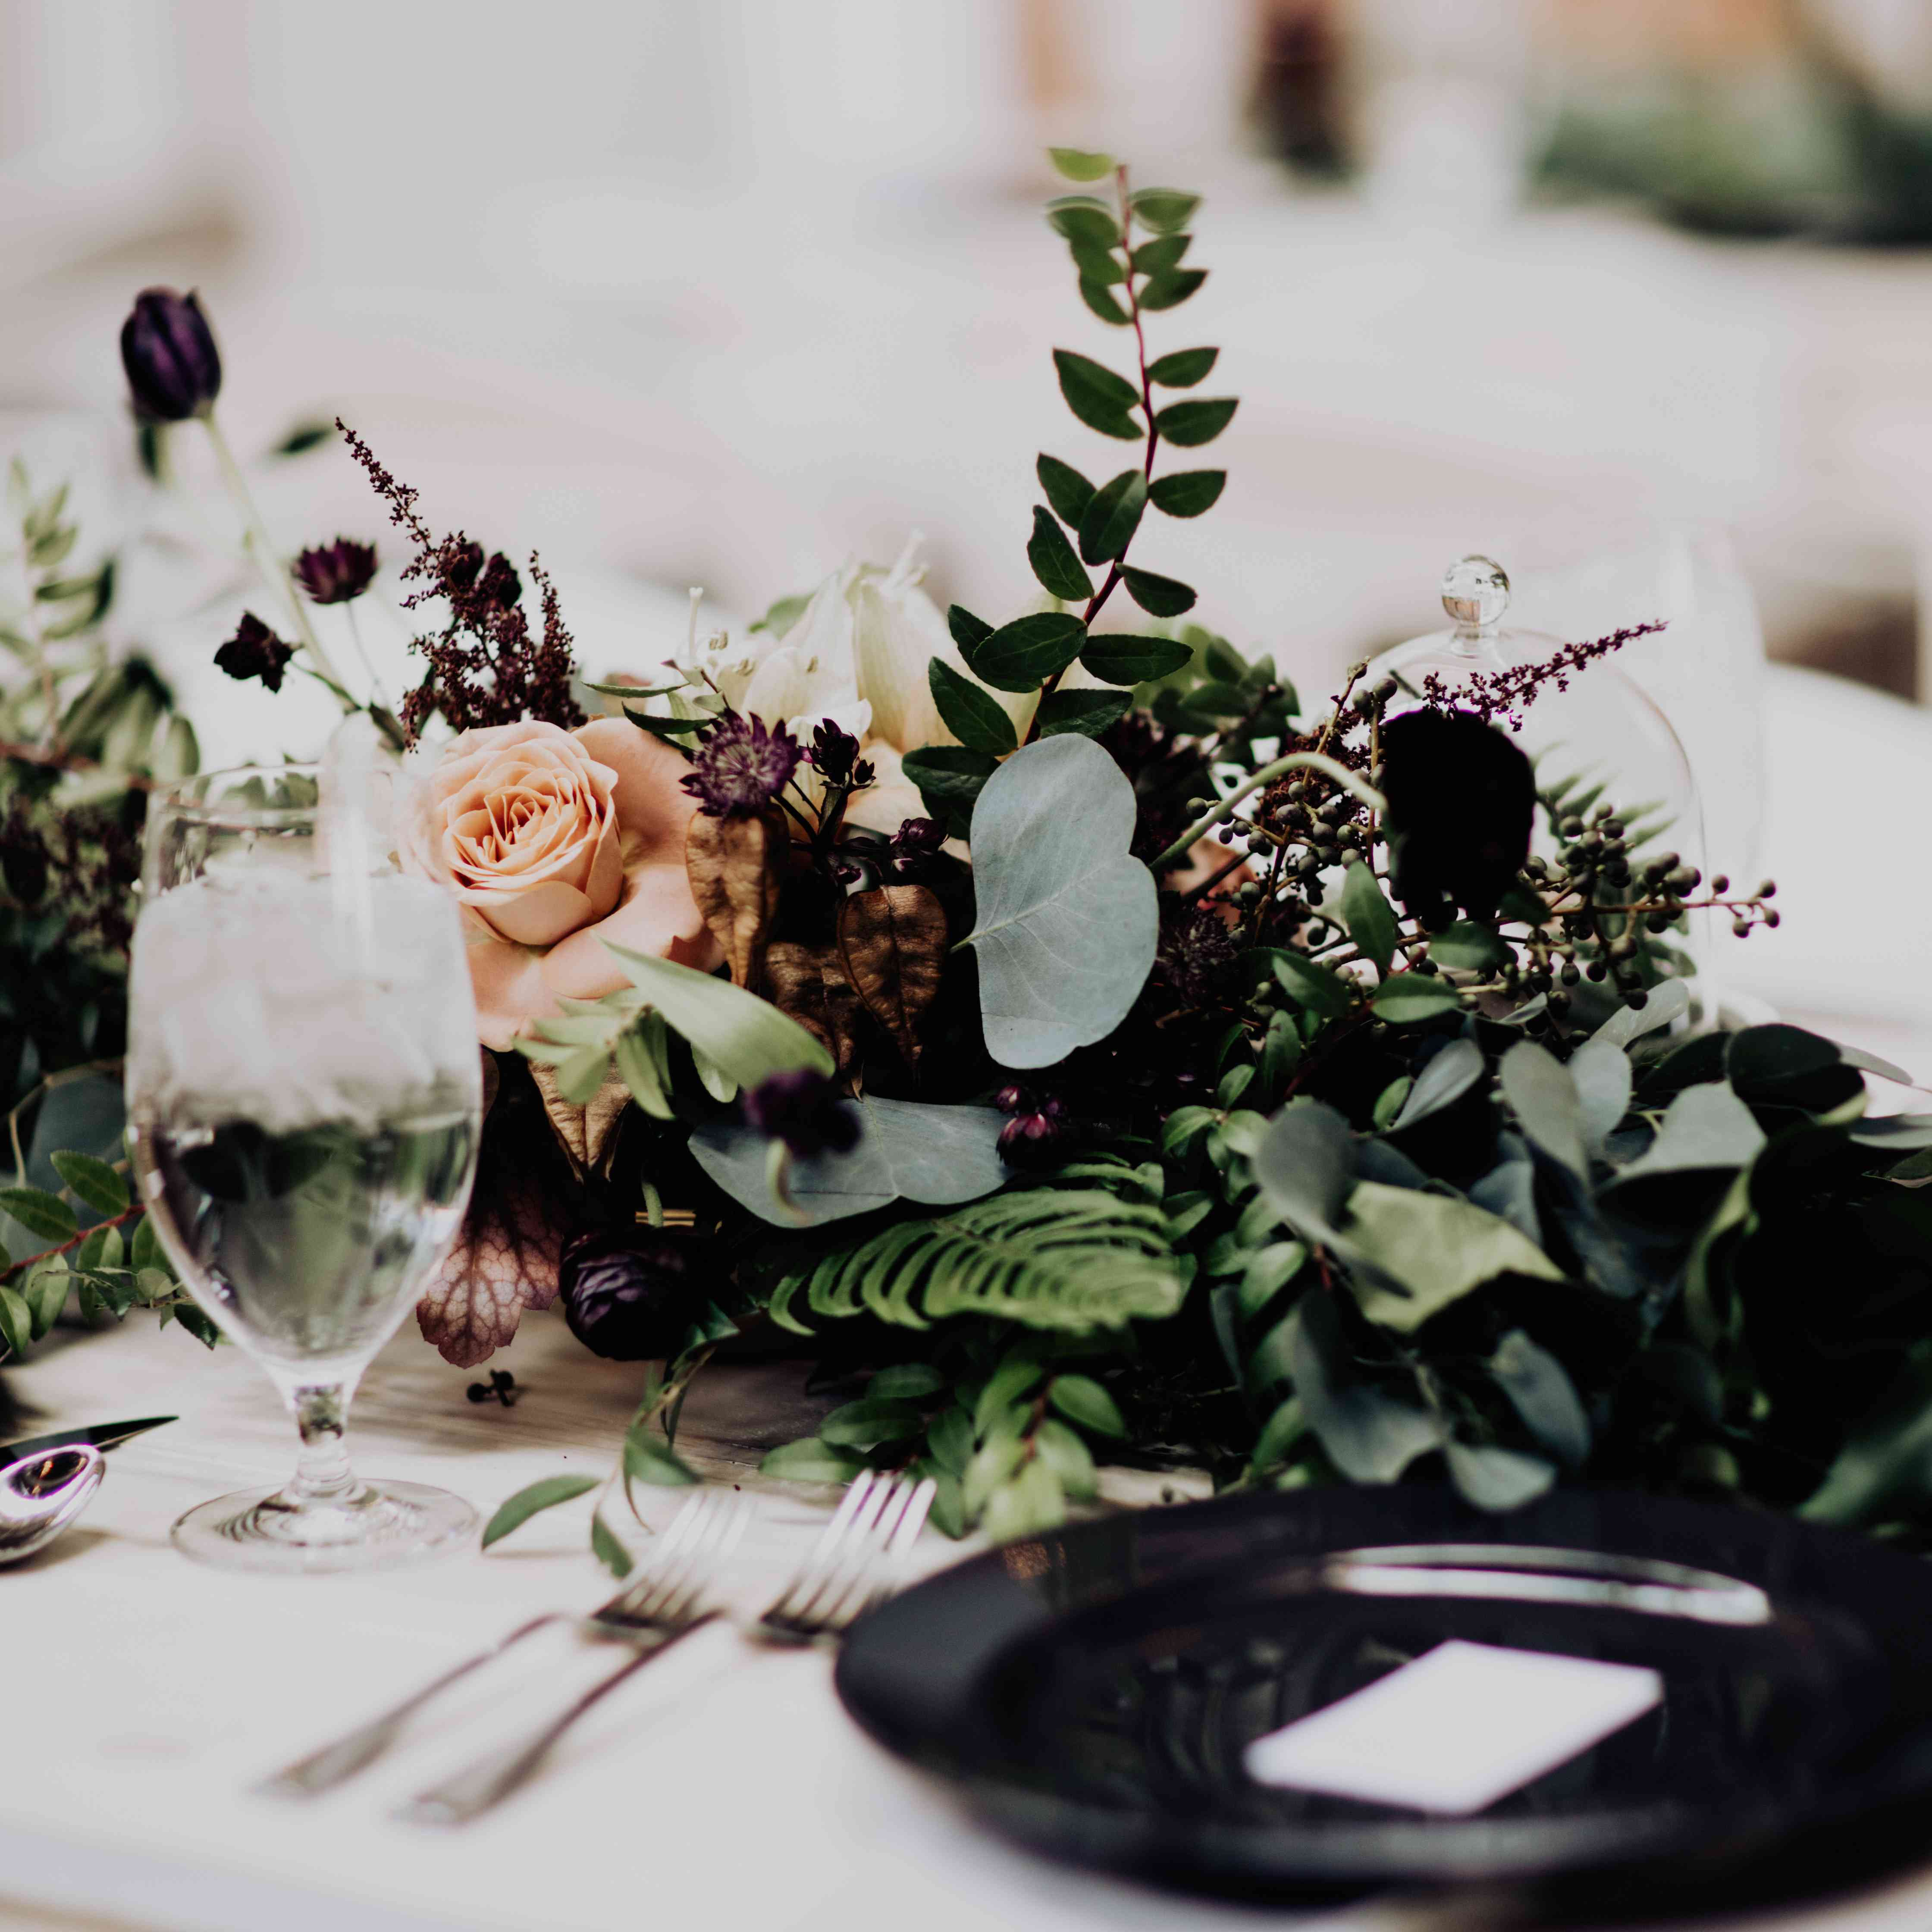 <p>place setting dark moody florals</p><br><br>